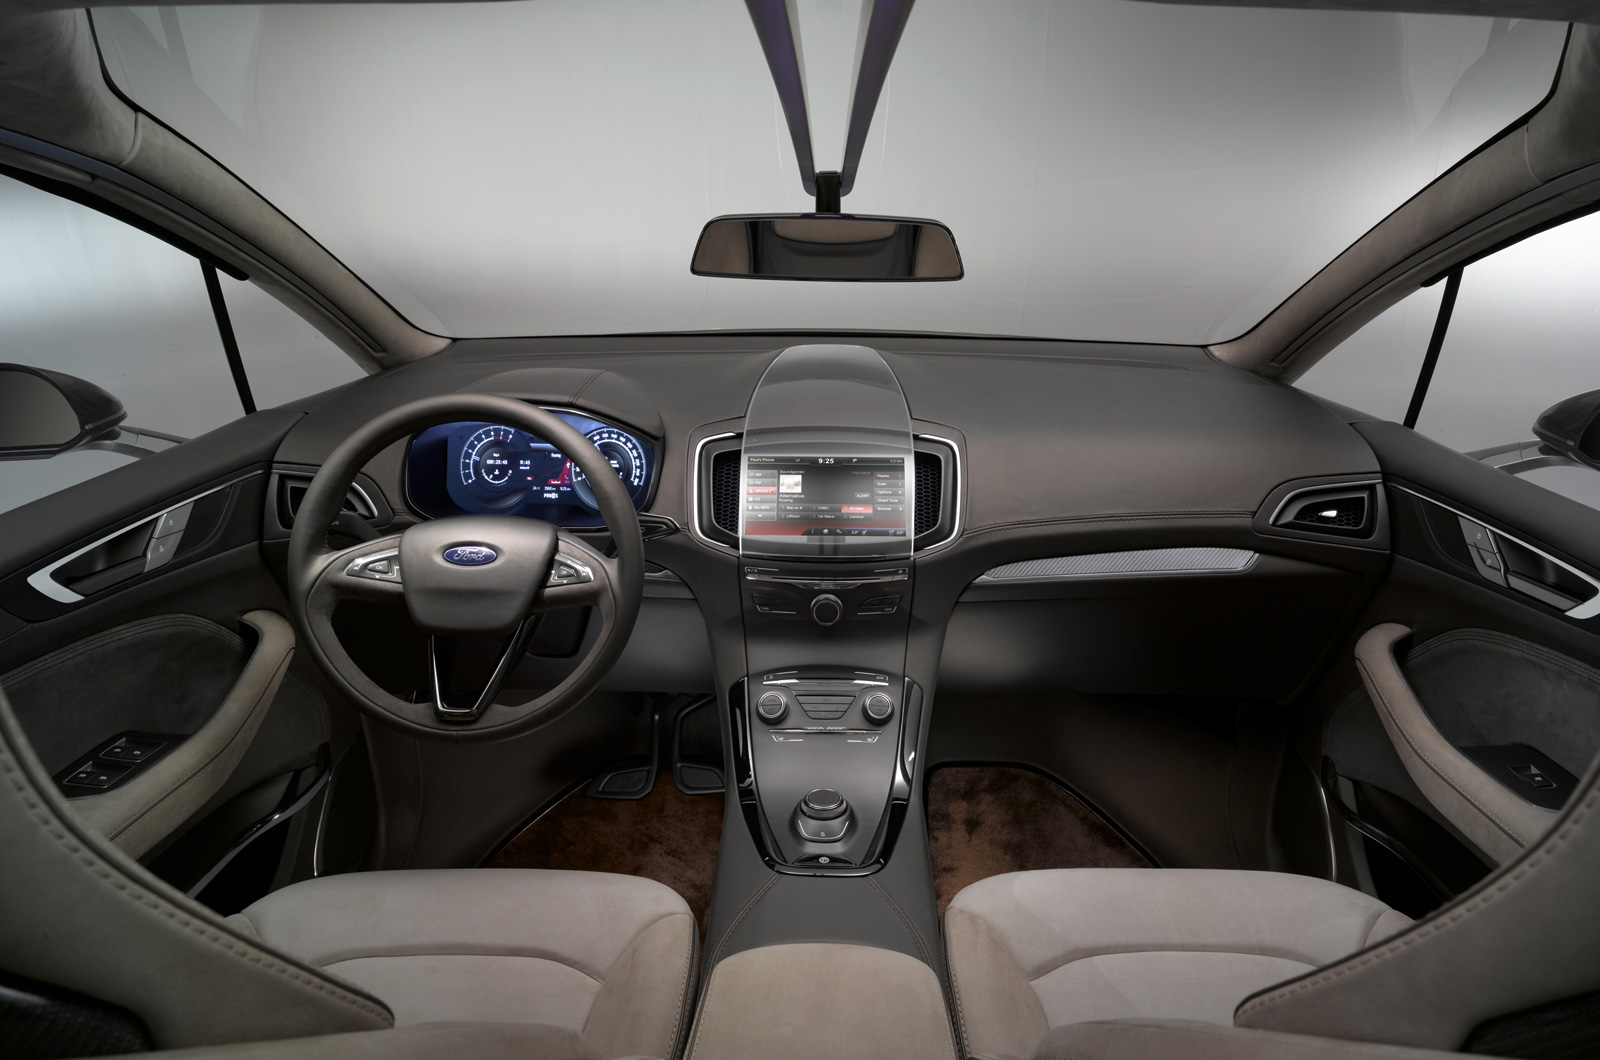 astounding-design-of-the-grey-seats-ideas-with-black-dash-and-black-steering-wheels-as-the-ford-s-max-2015-interior